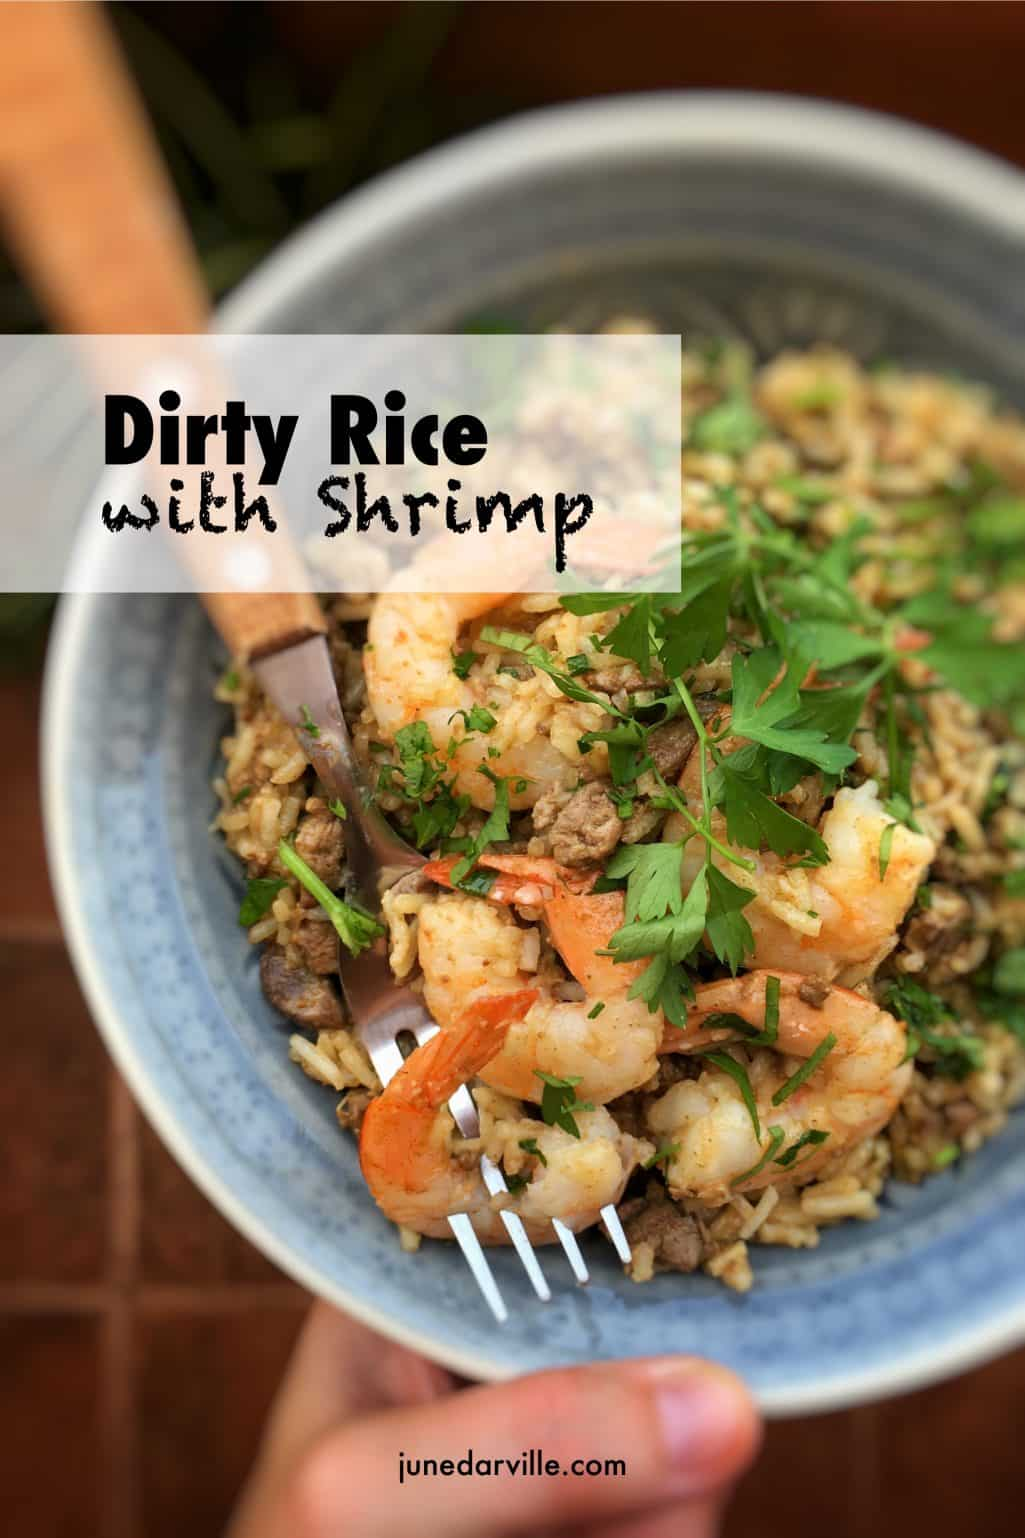 Dirty rice with shrimp? You will love this bowl of stir fried buttery rice, chopped liver bits, shrimp and hints of cumin and paprika!